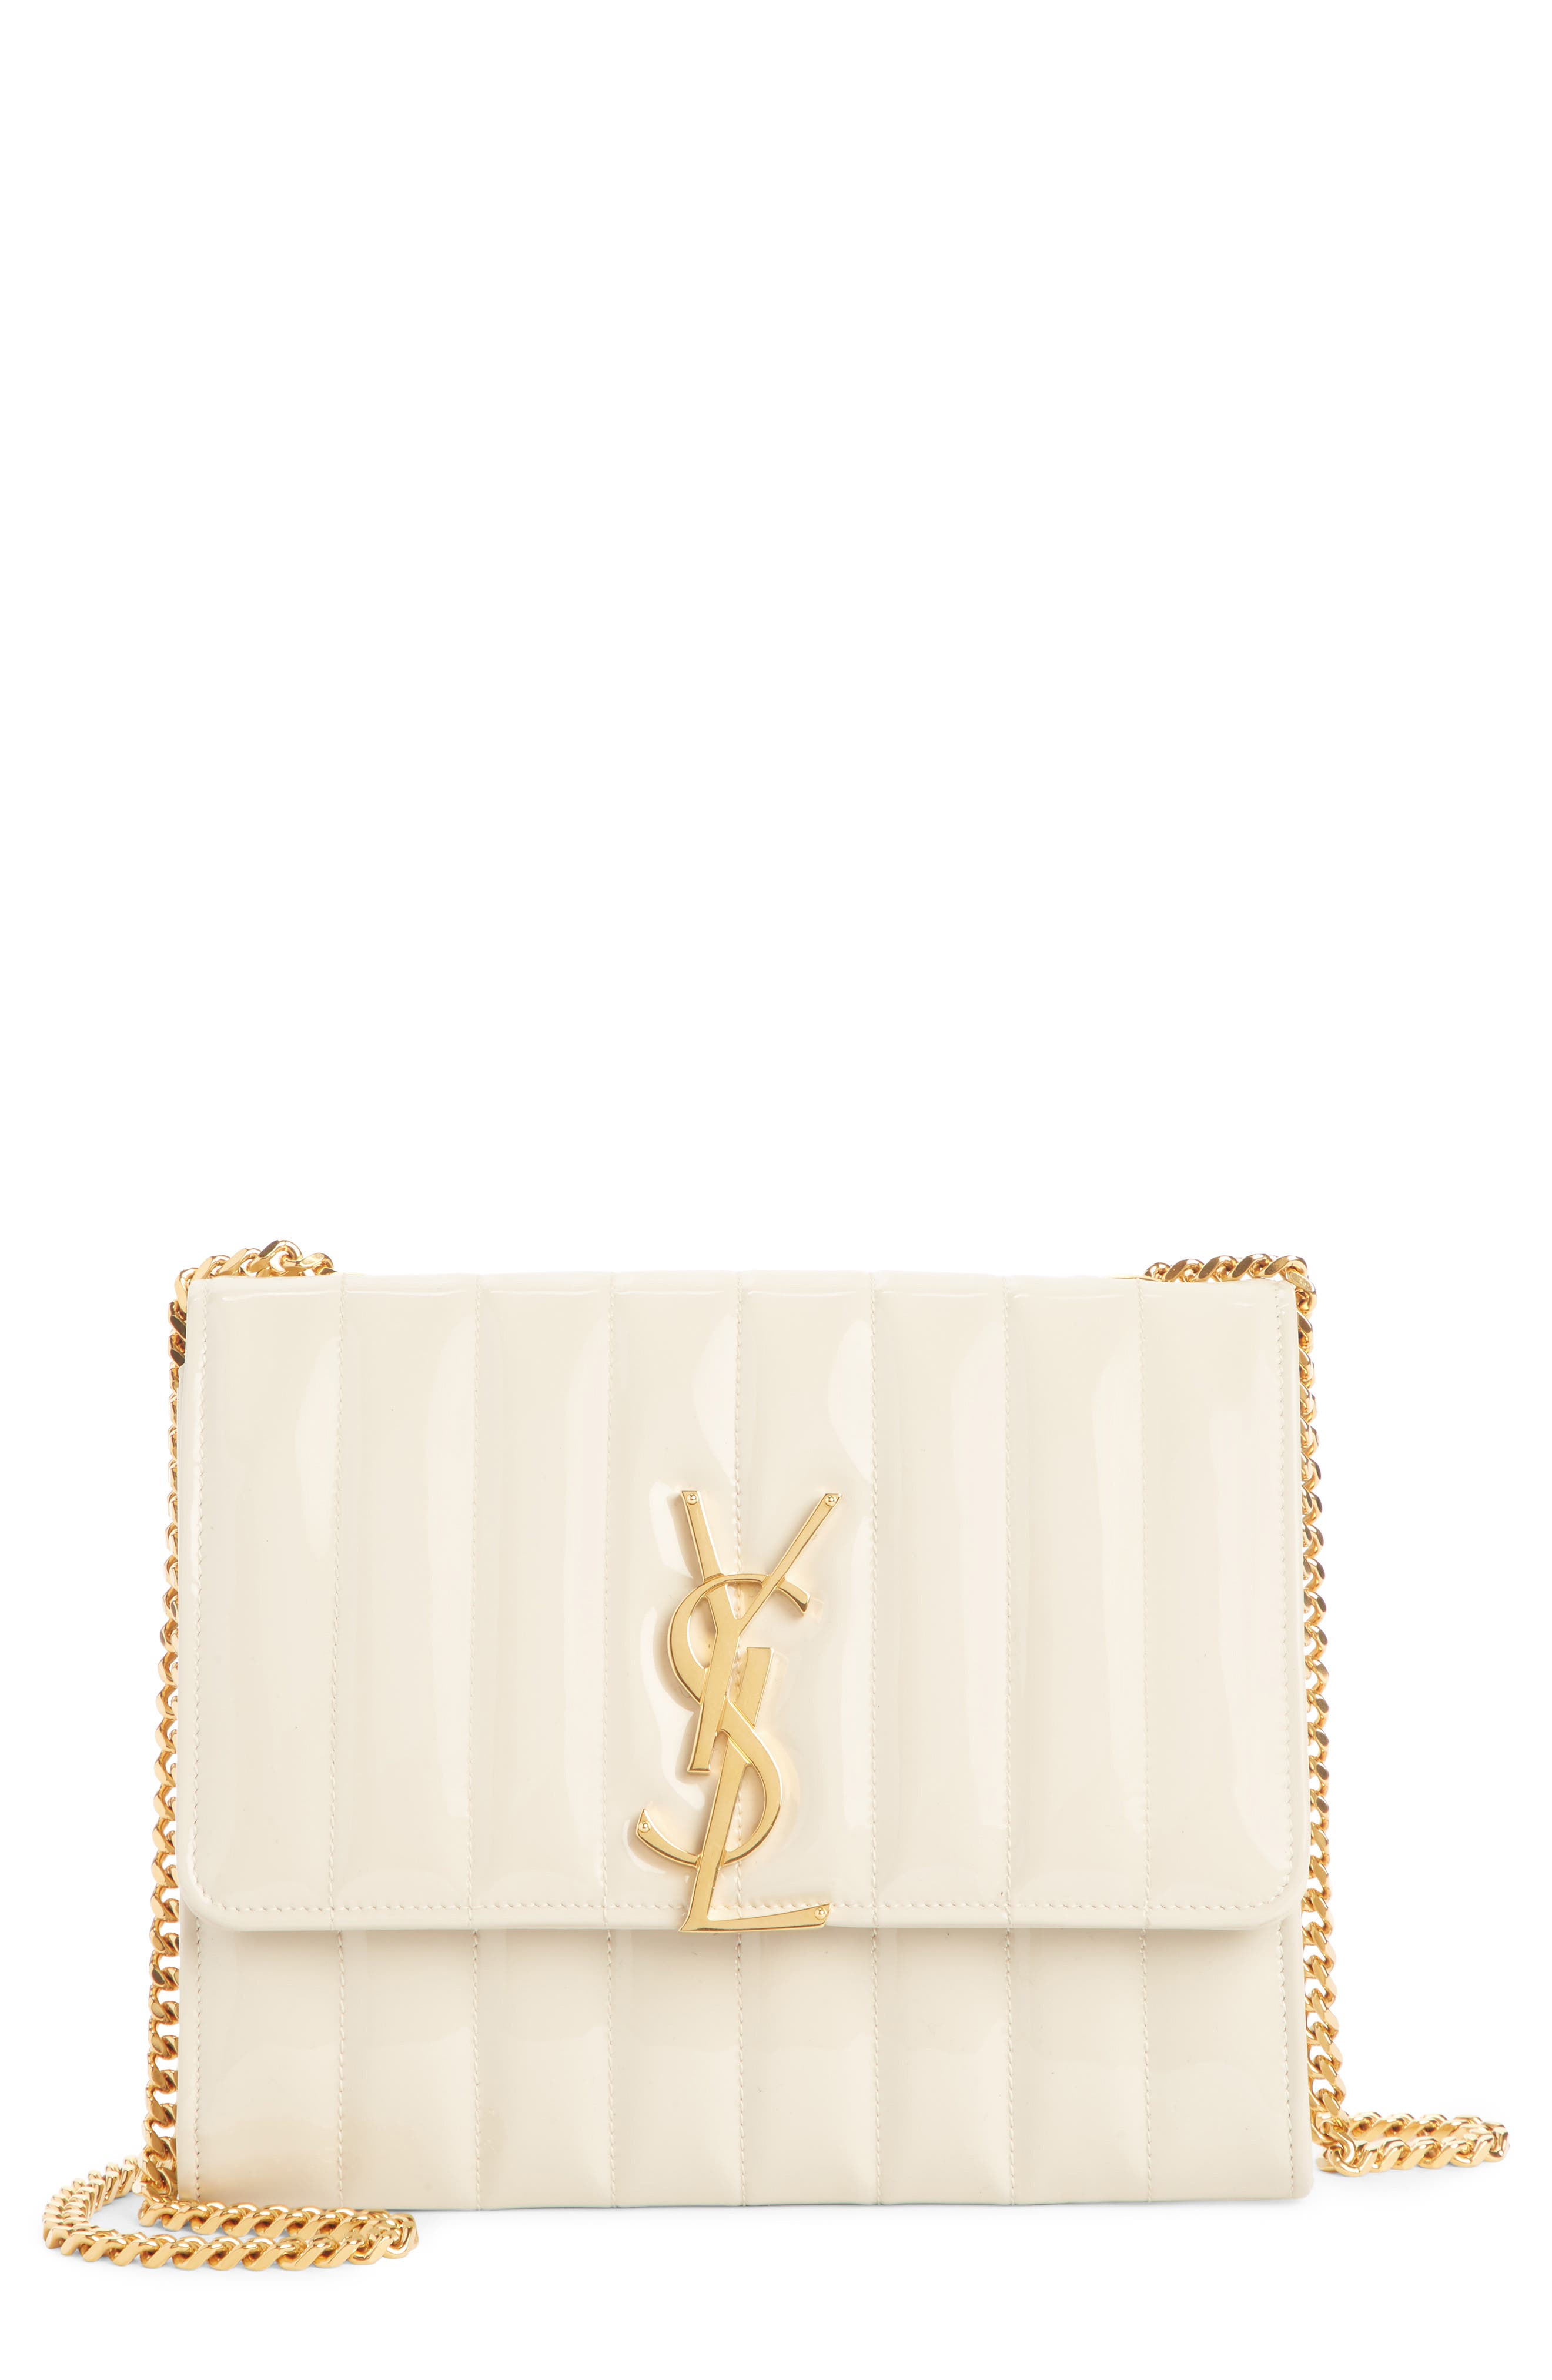 SAINT LAURENT, Vicky Patent Leather Wallet on a Chain, Main thumbnail 1, color, CREMA SOFT